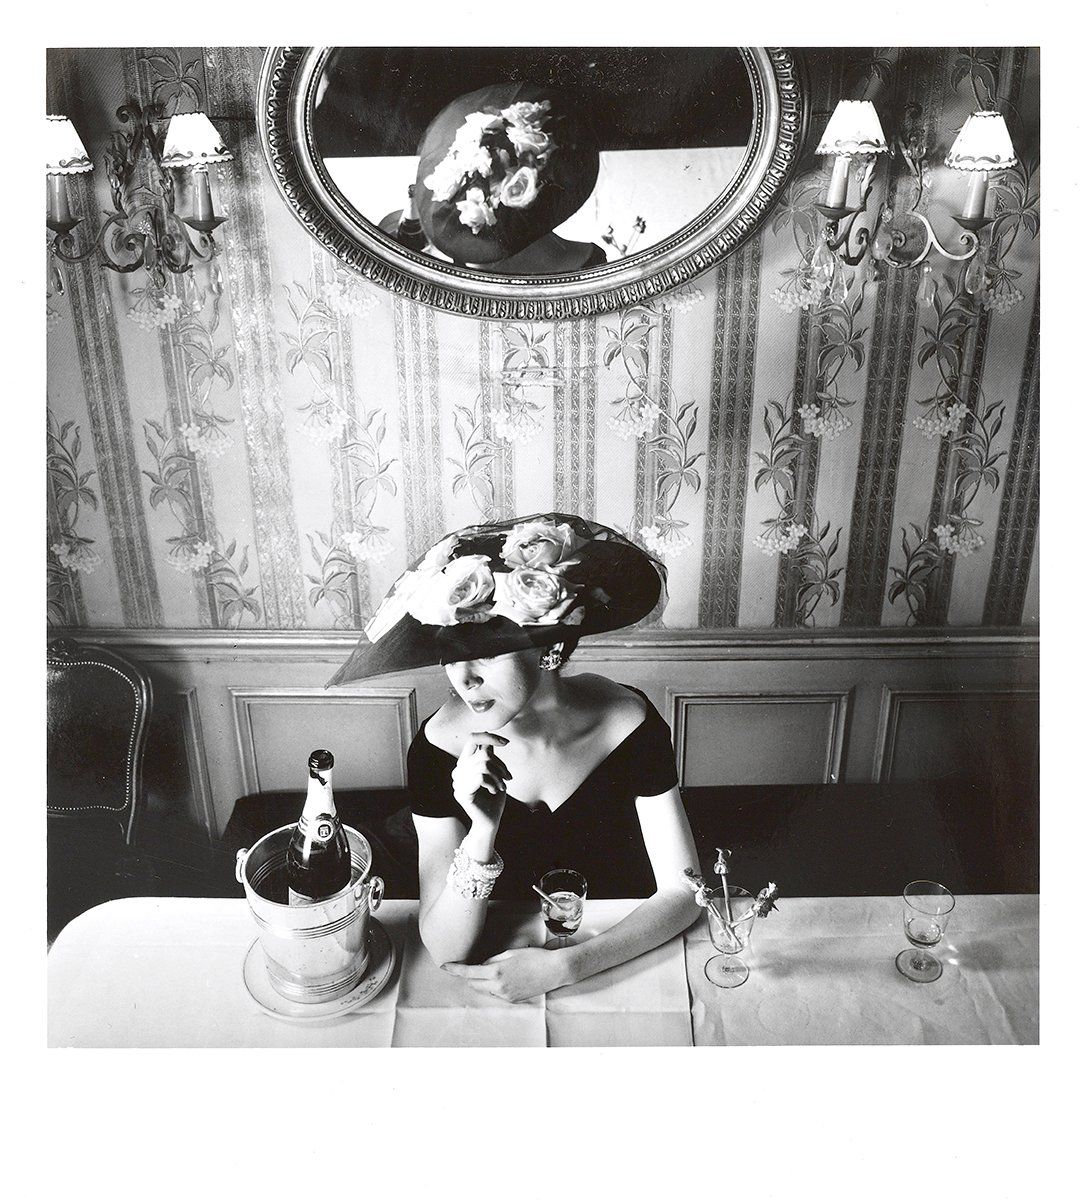 A New Exhibit on the Legendary Images of Christian Dior